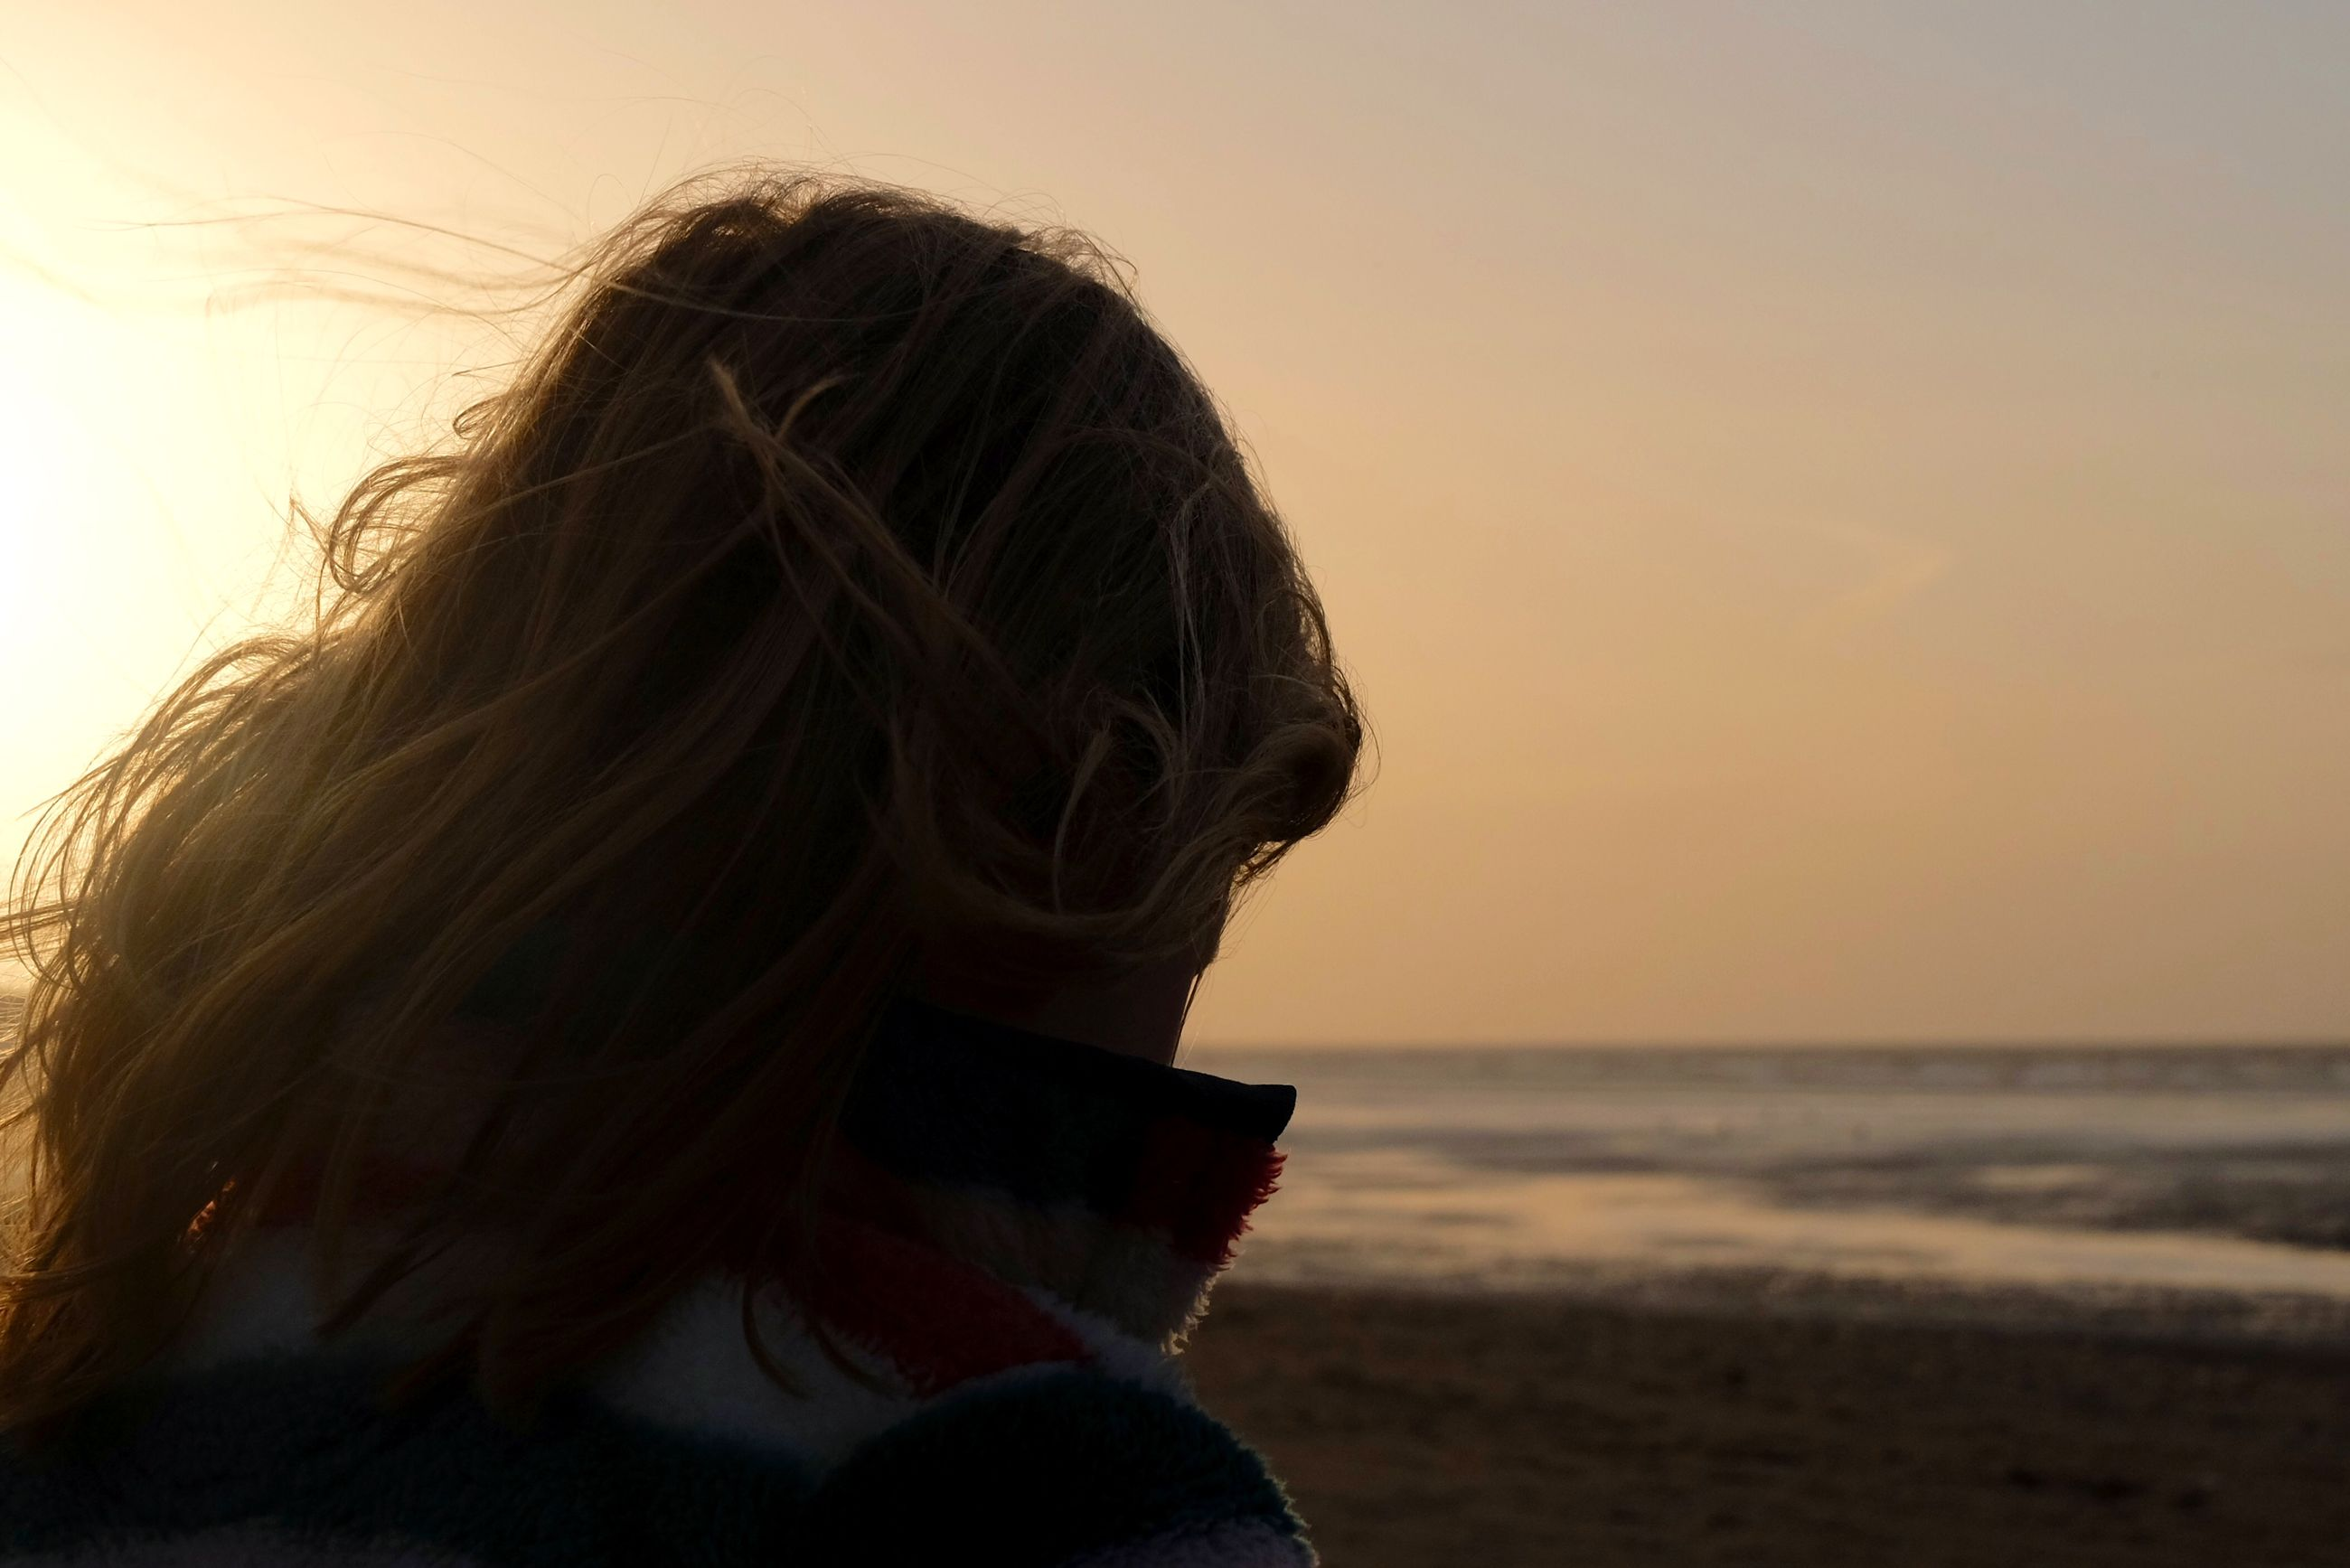 sea, beach, horizon over water, rear view, lifestyles, leisure activity, long hair, person, water, headshot, sky, shore, tranquility, sunset, tranquil scene, focus on foreground, nature, beauty in nature